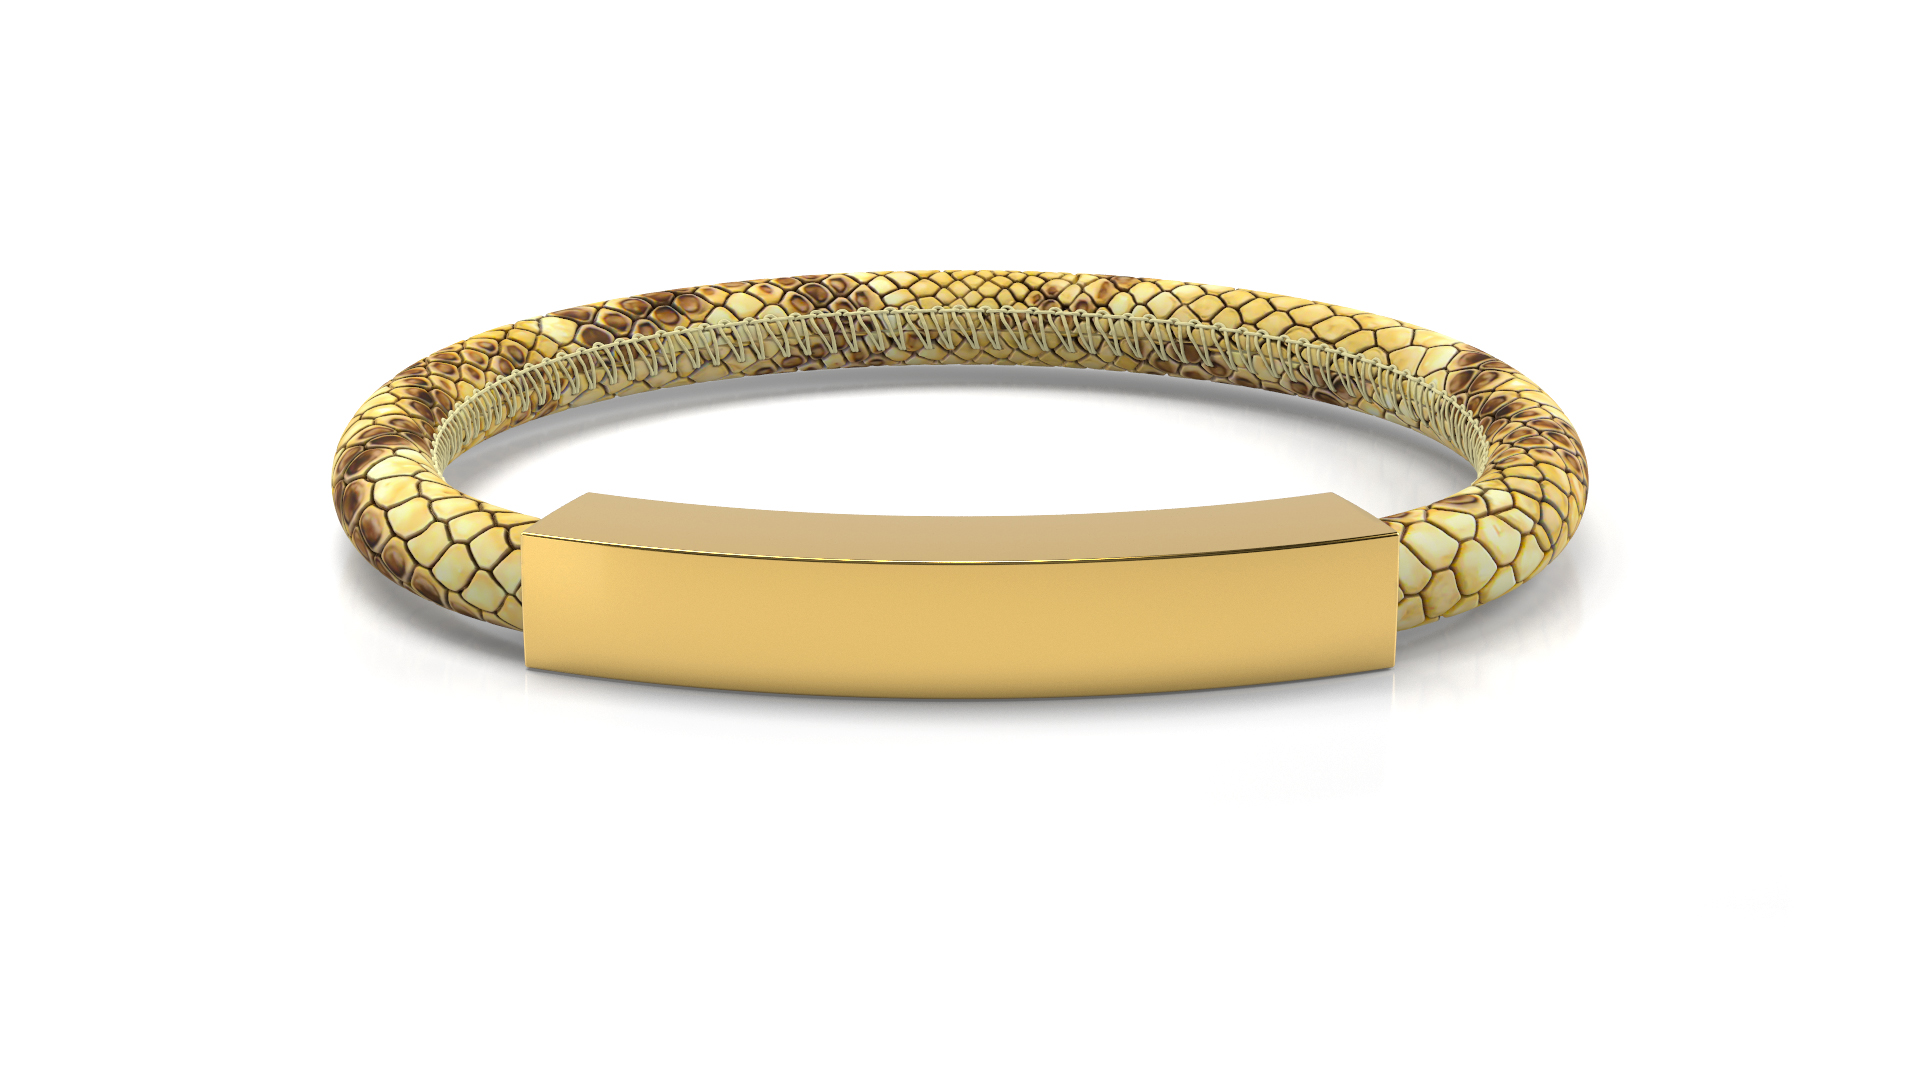 bracelet_1horizontal_7mm_crocodile_5700